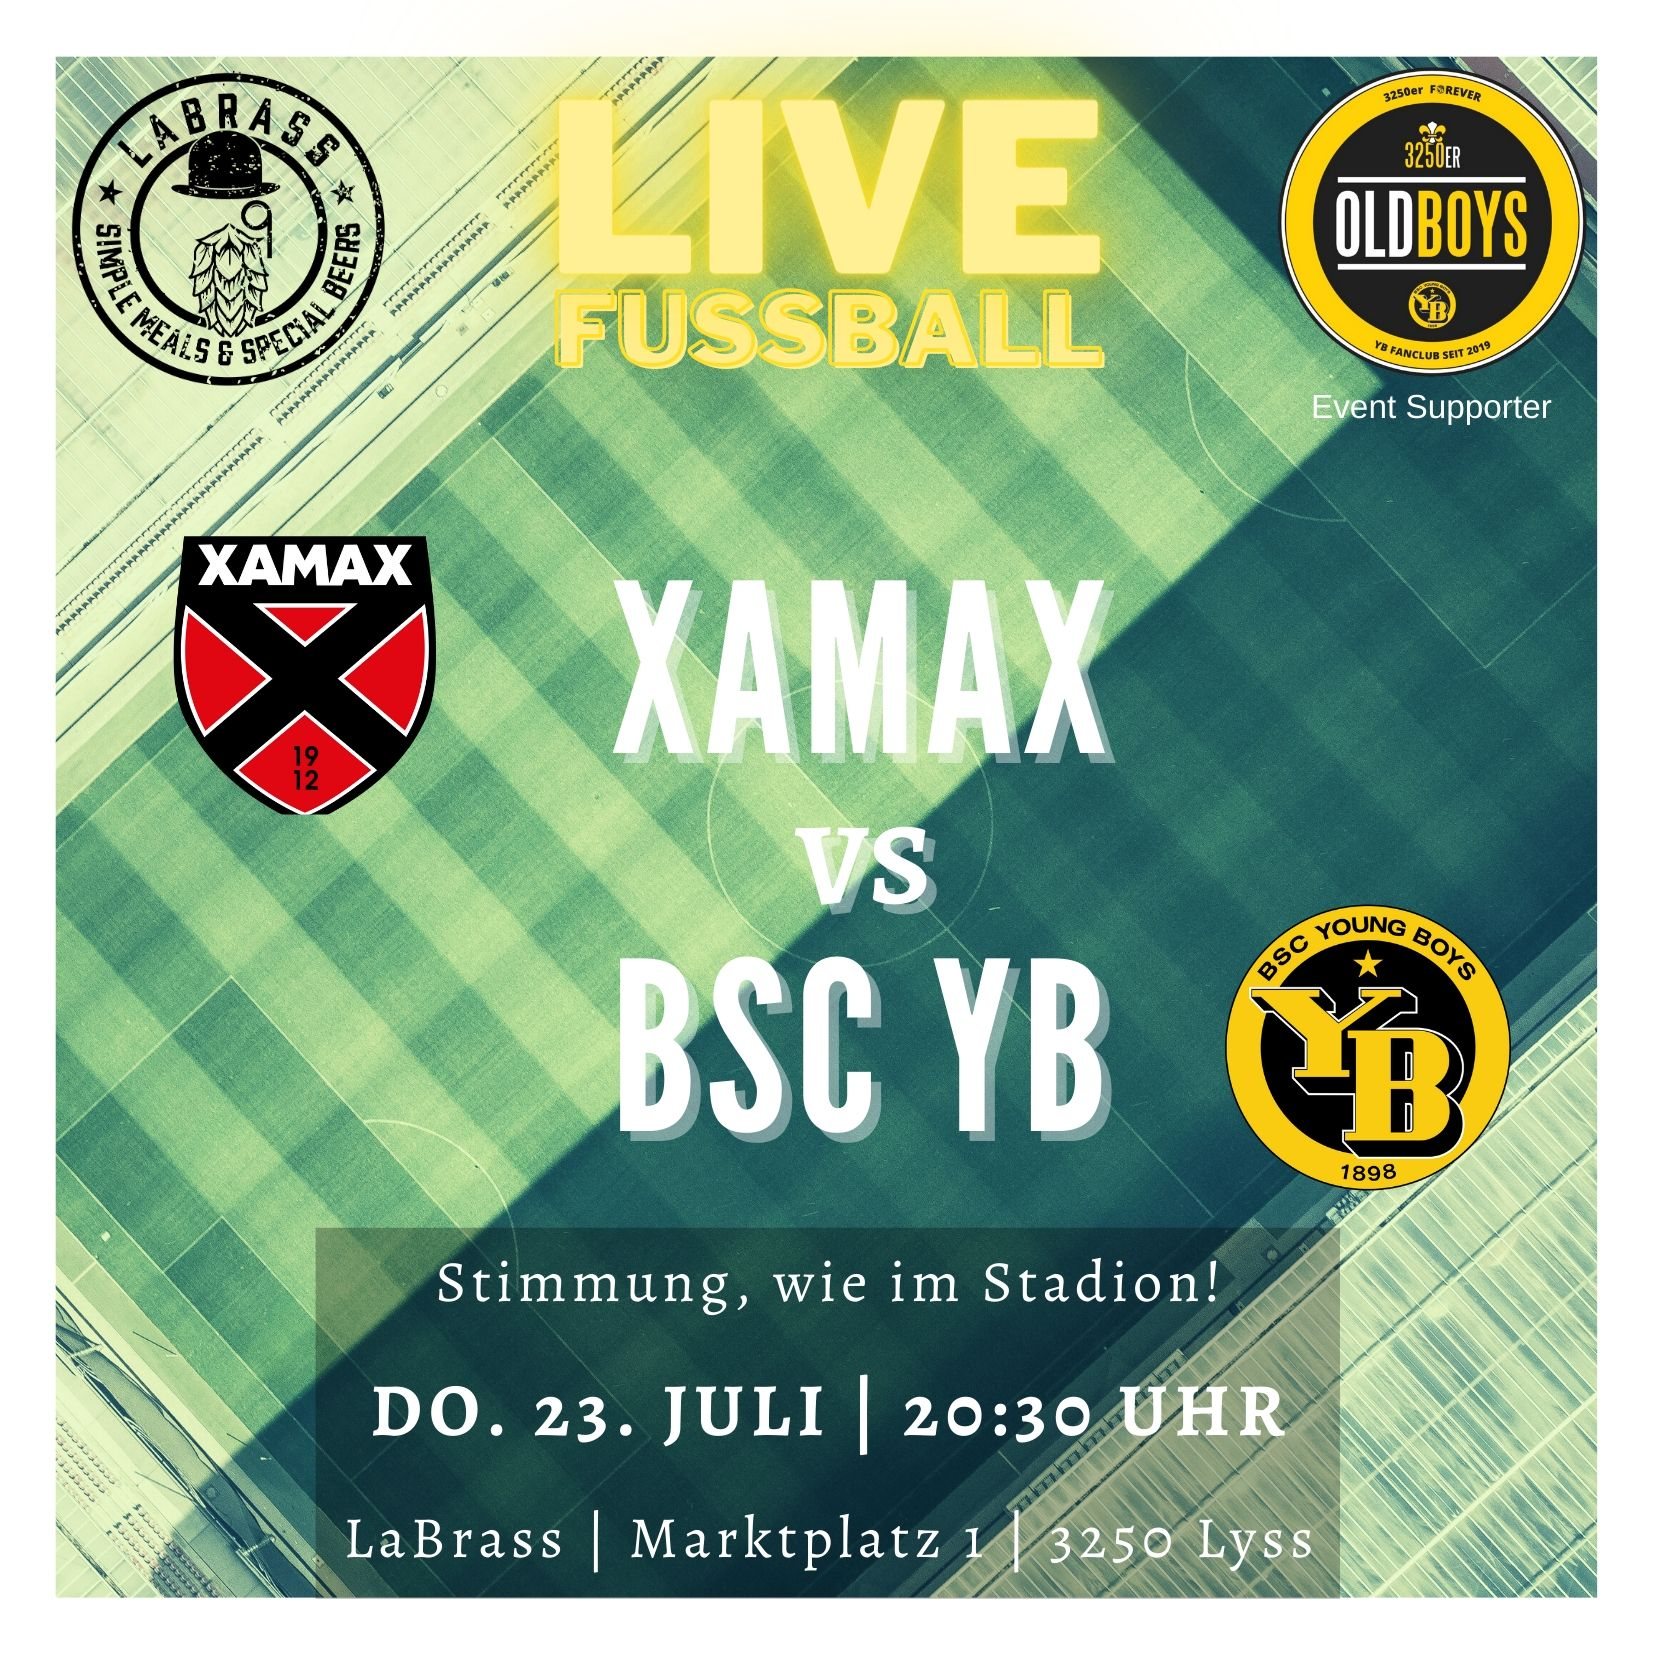 You are currently viewing Neuchâtel Xamax vs. BSC YB